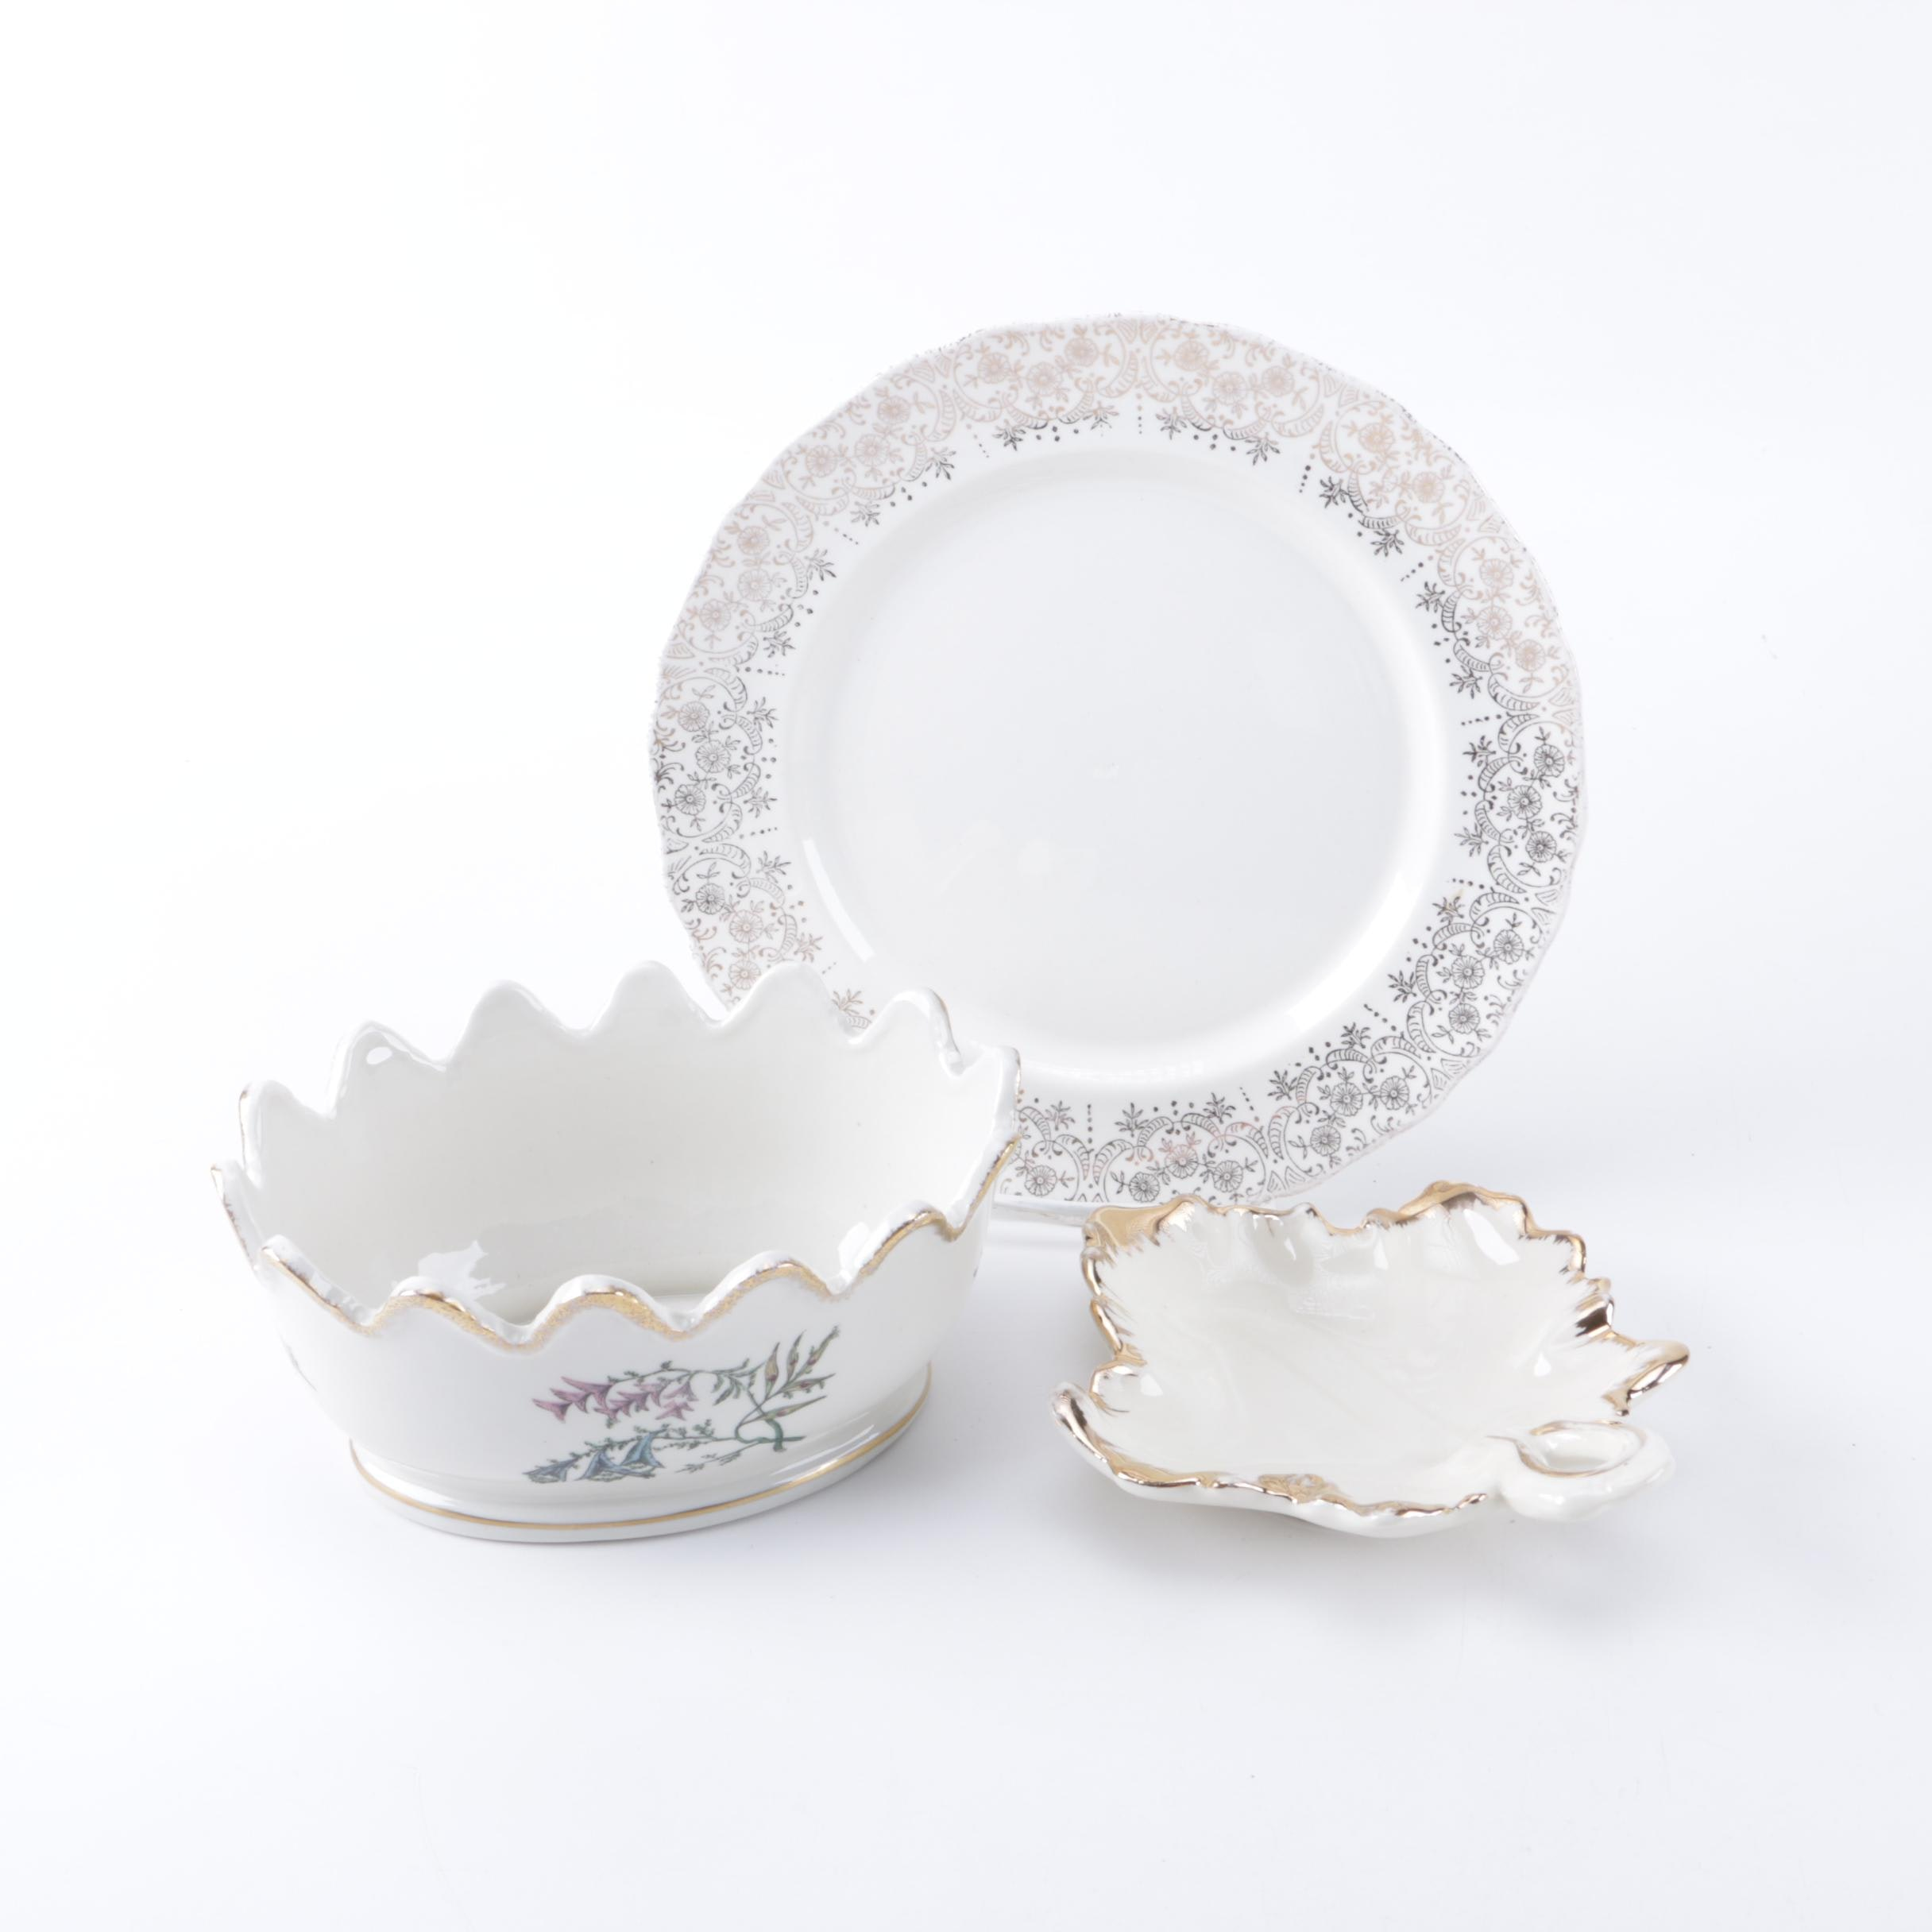 Collection of Decorative White Ceramic Dishes